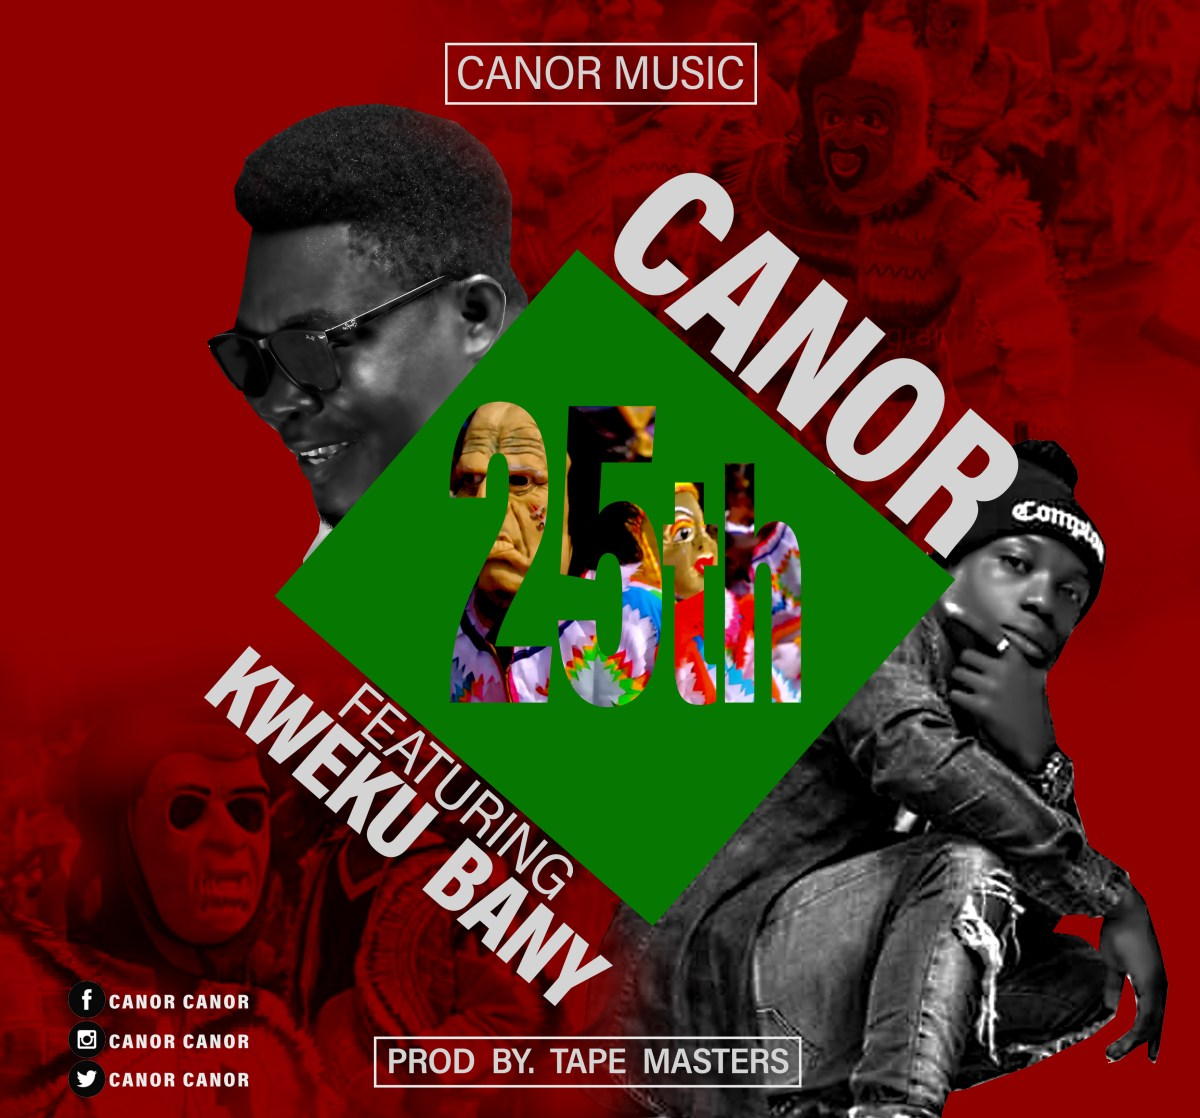 Download : Canor Ft Kweku Bany - 25th (Prod By Tape Masters)